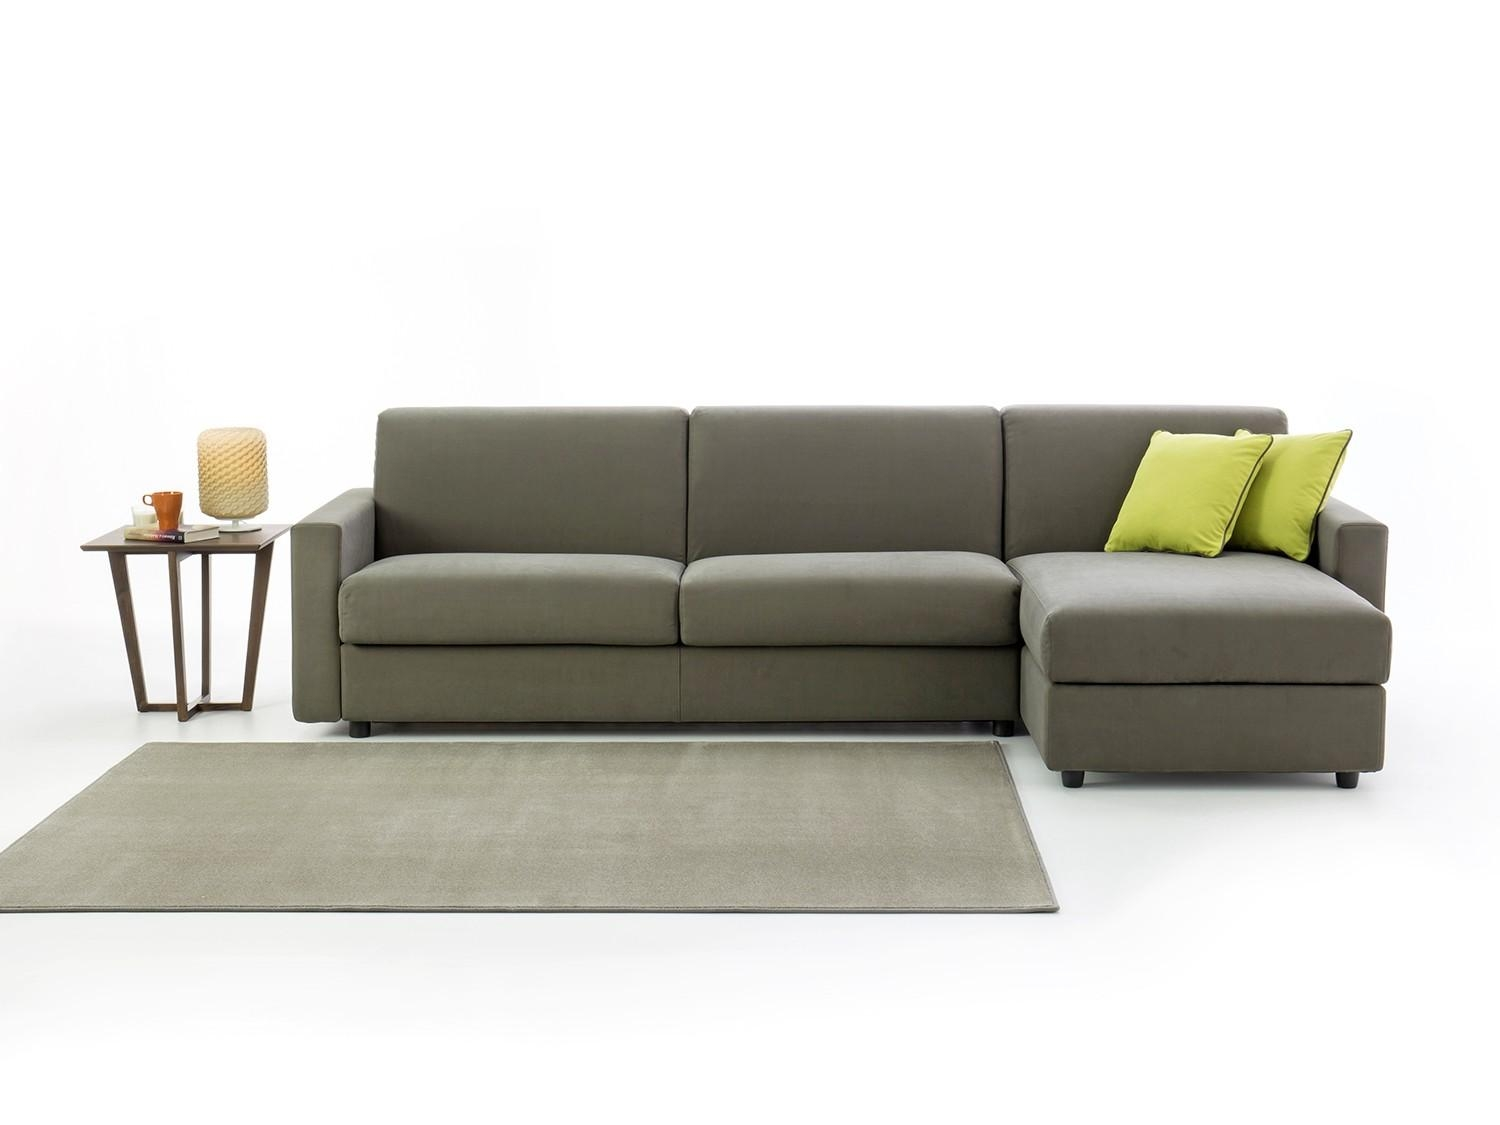 Sofa Bed Chaise With Storage | Tehranmix Decoration Within Chaise Sofa Beds With Storage (Image 11 of 20)